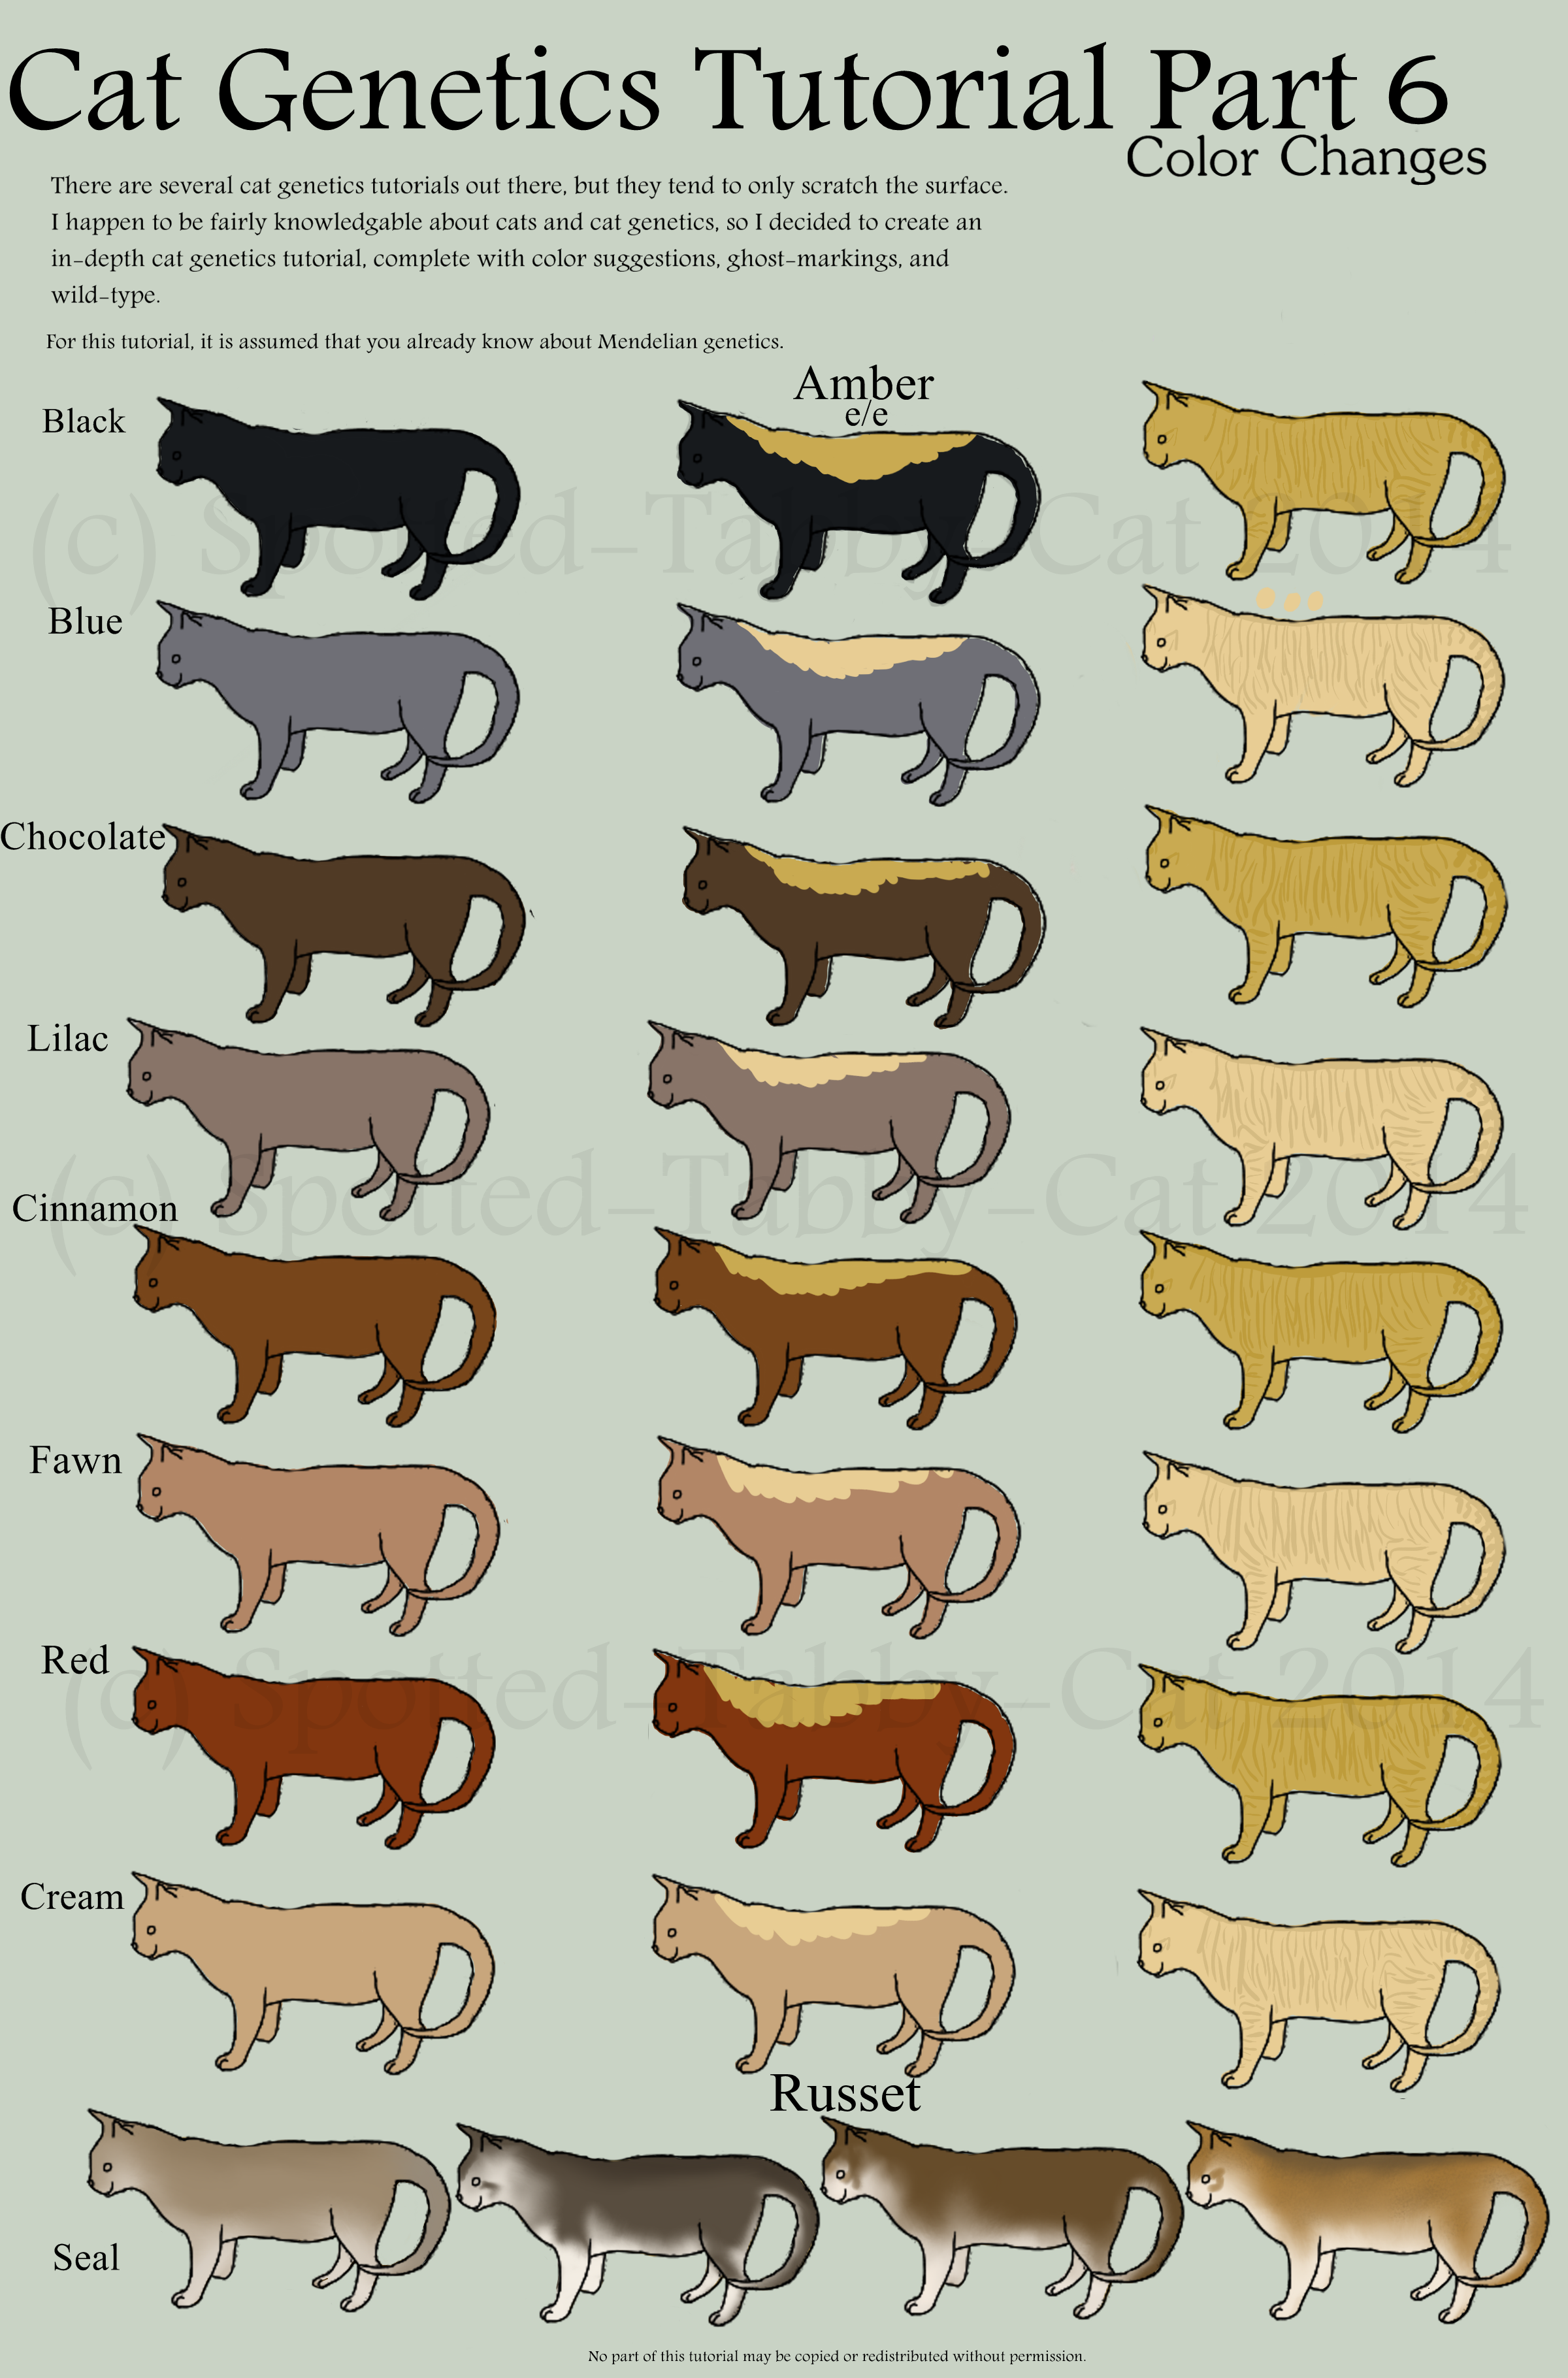 Cat Genetics Tutorial Part 7 Color Changes By Spotted